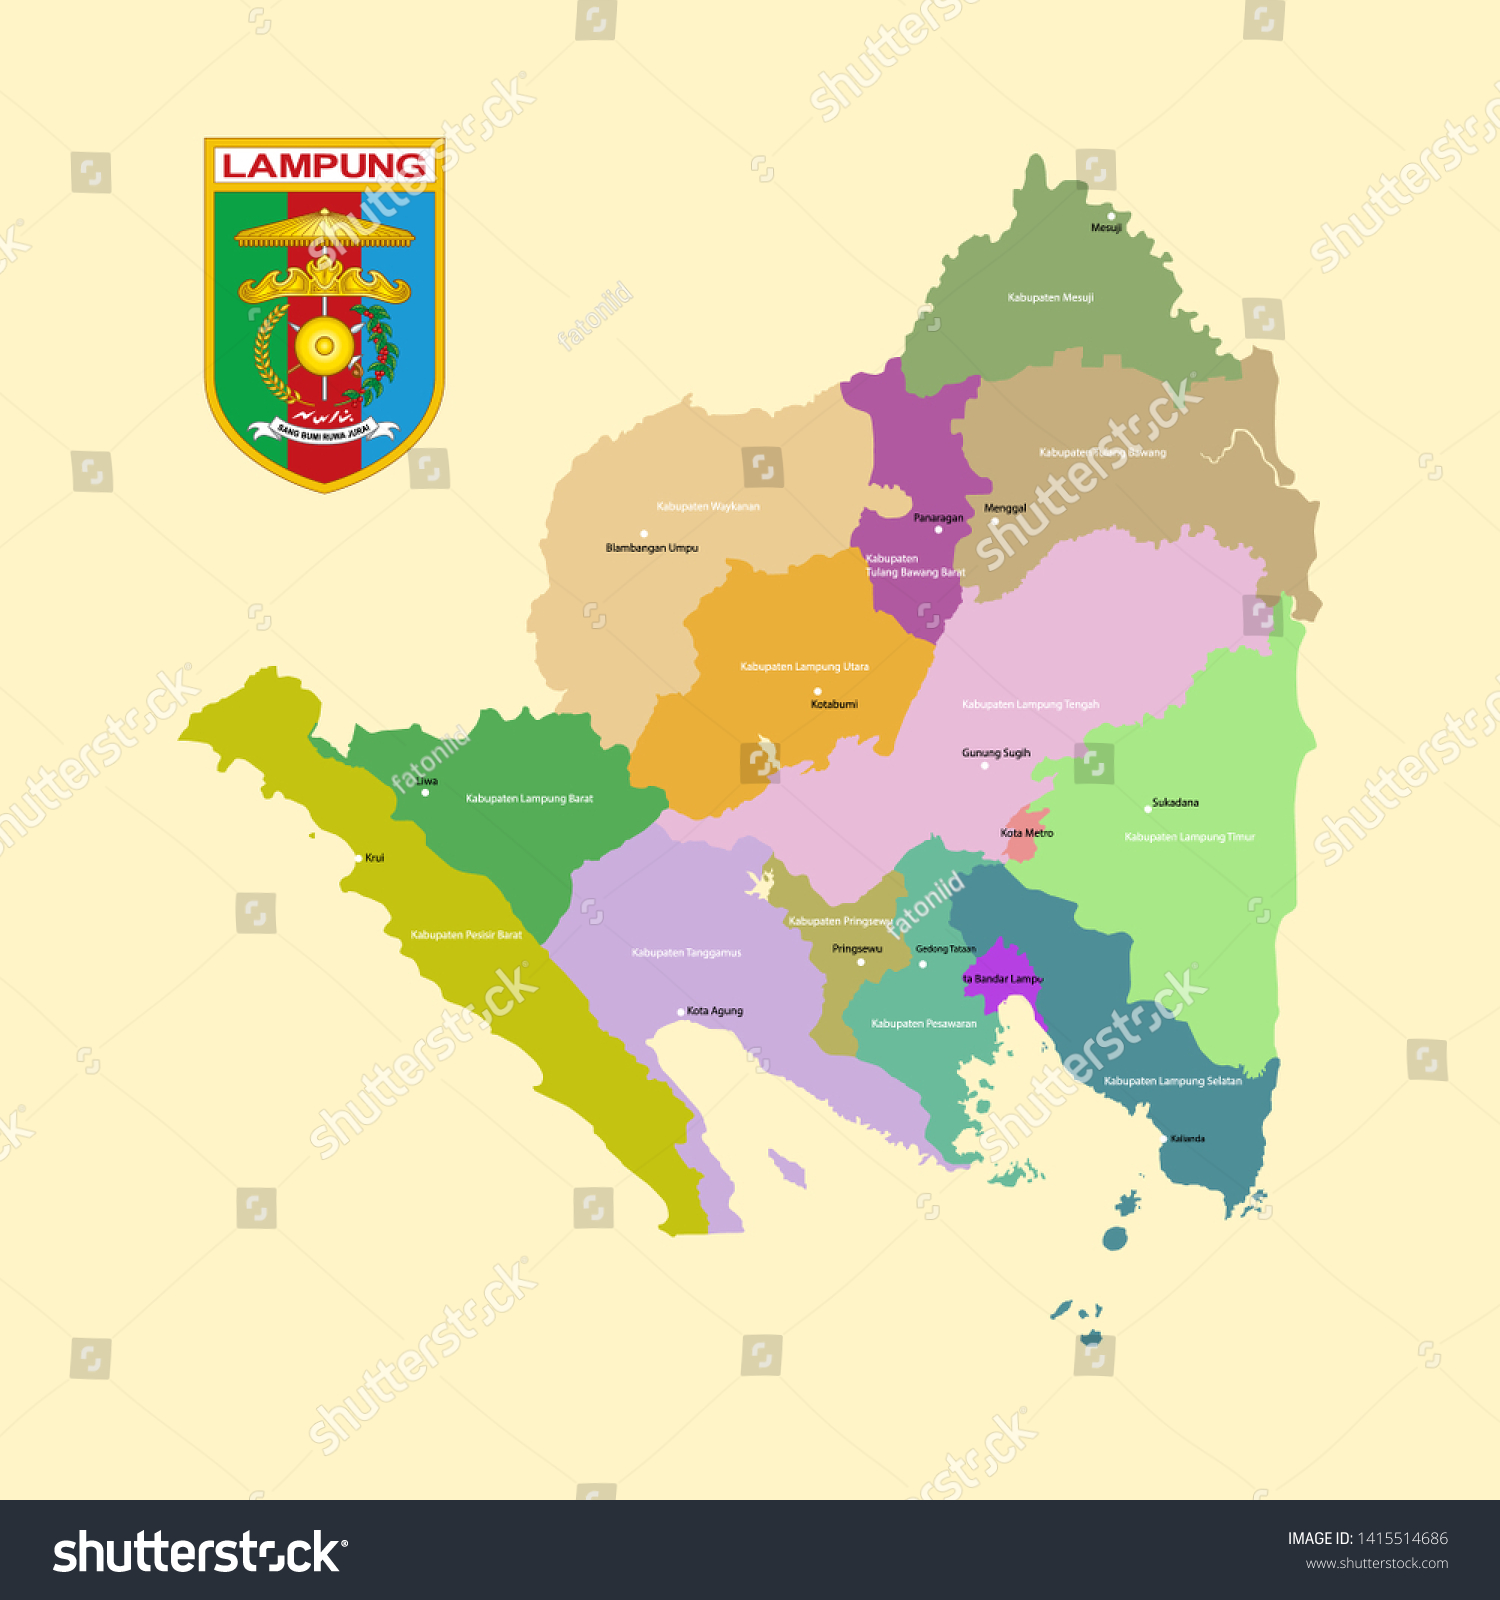 Colored Map Logo Lampung Province Stock Vector Royalty Free 1415514686